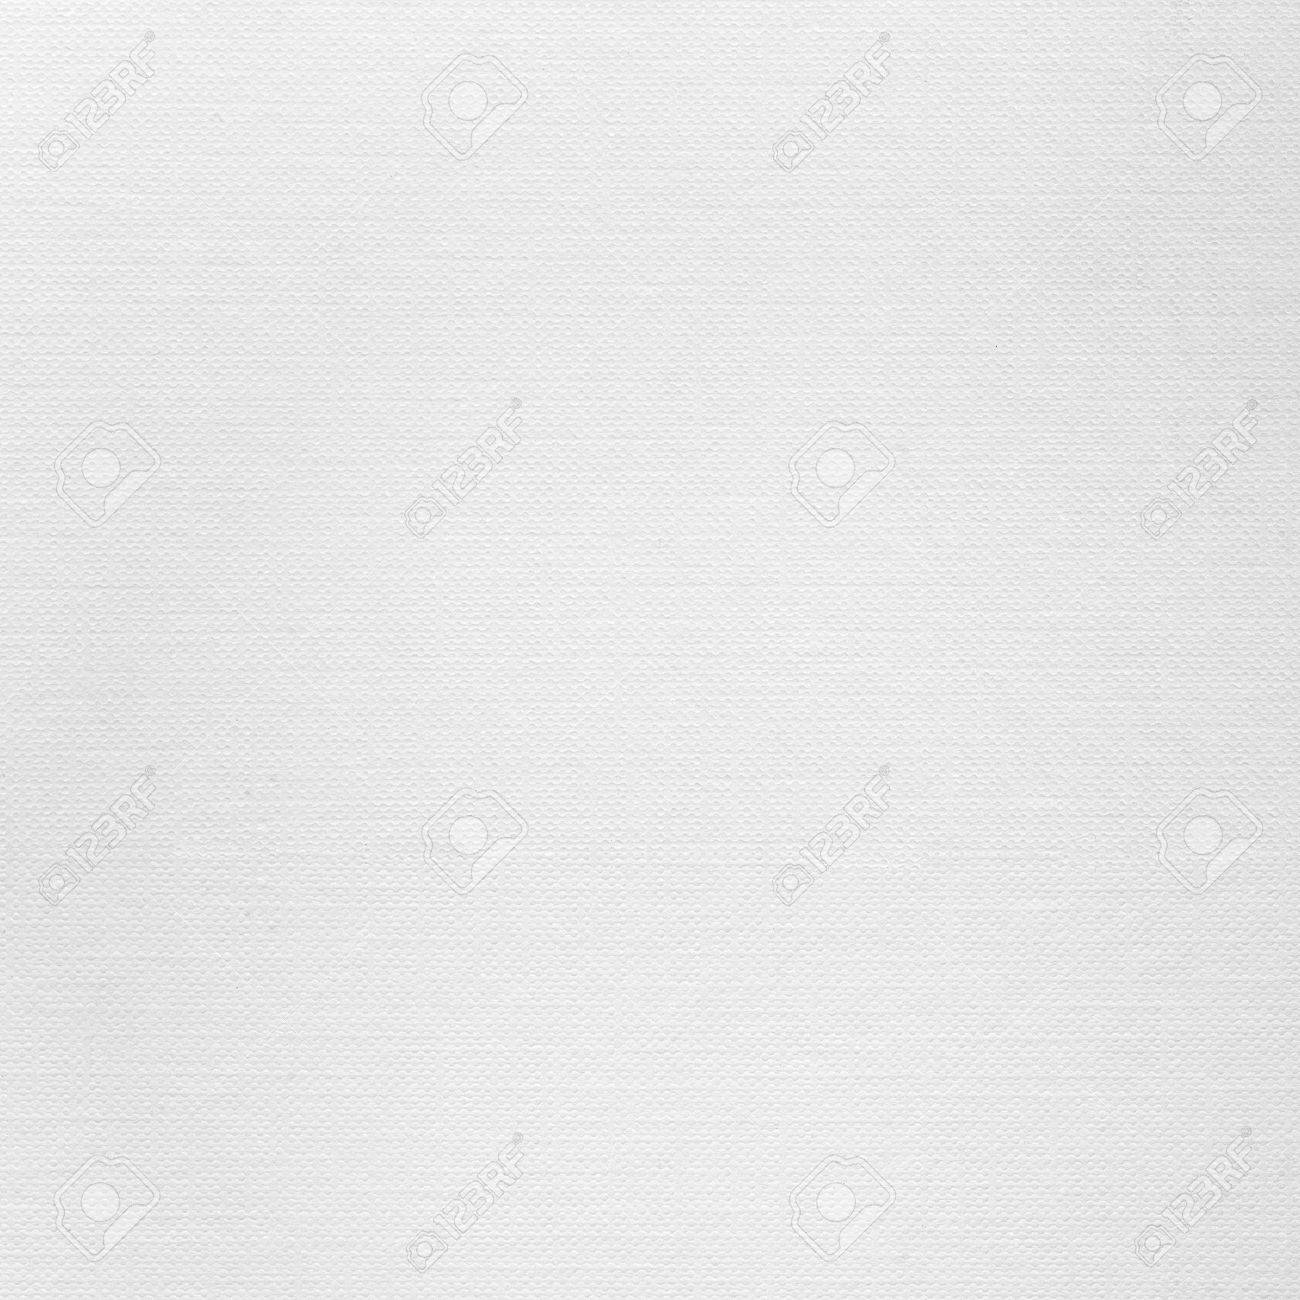 White Paper Texture Background With Soft Pattern Photo – White Paper